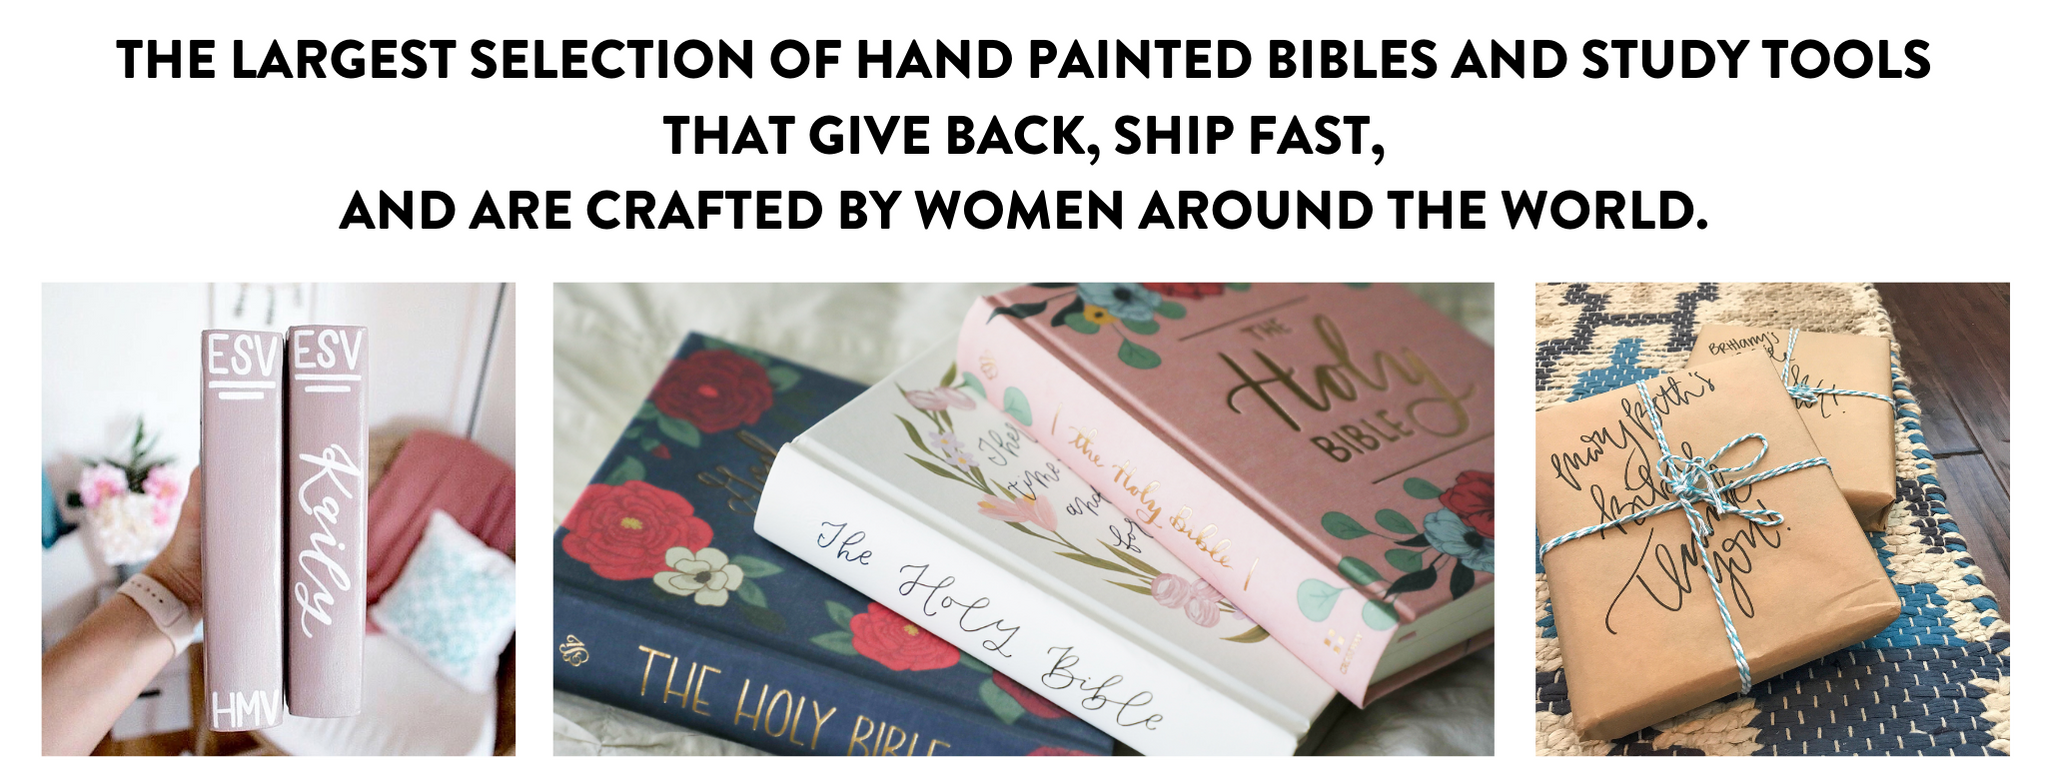 Wheat And Honey Co Hand Painted Bibles Study Tools And Workshops